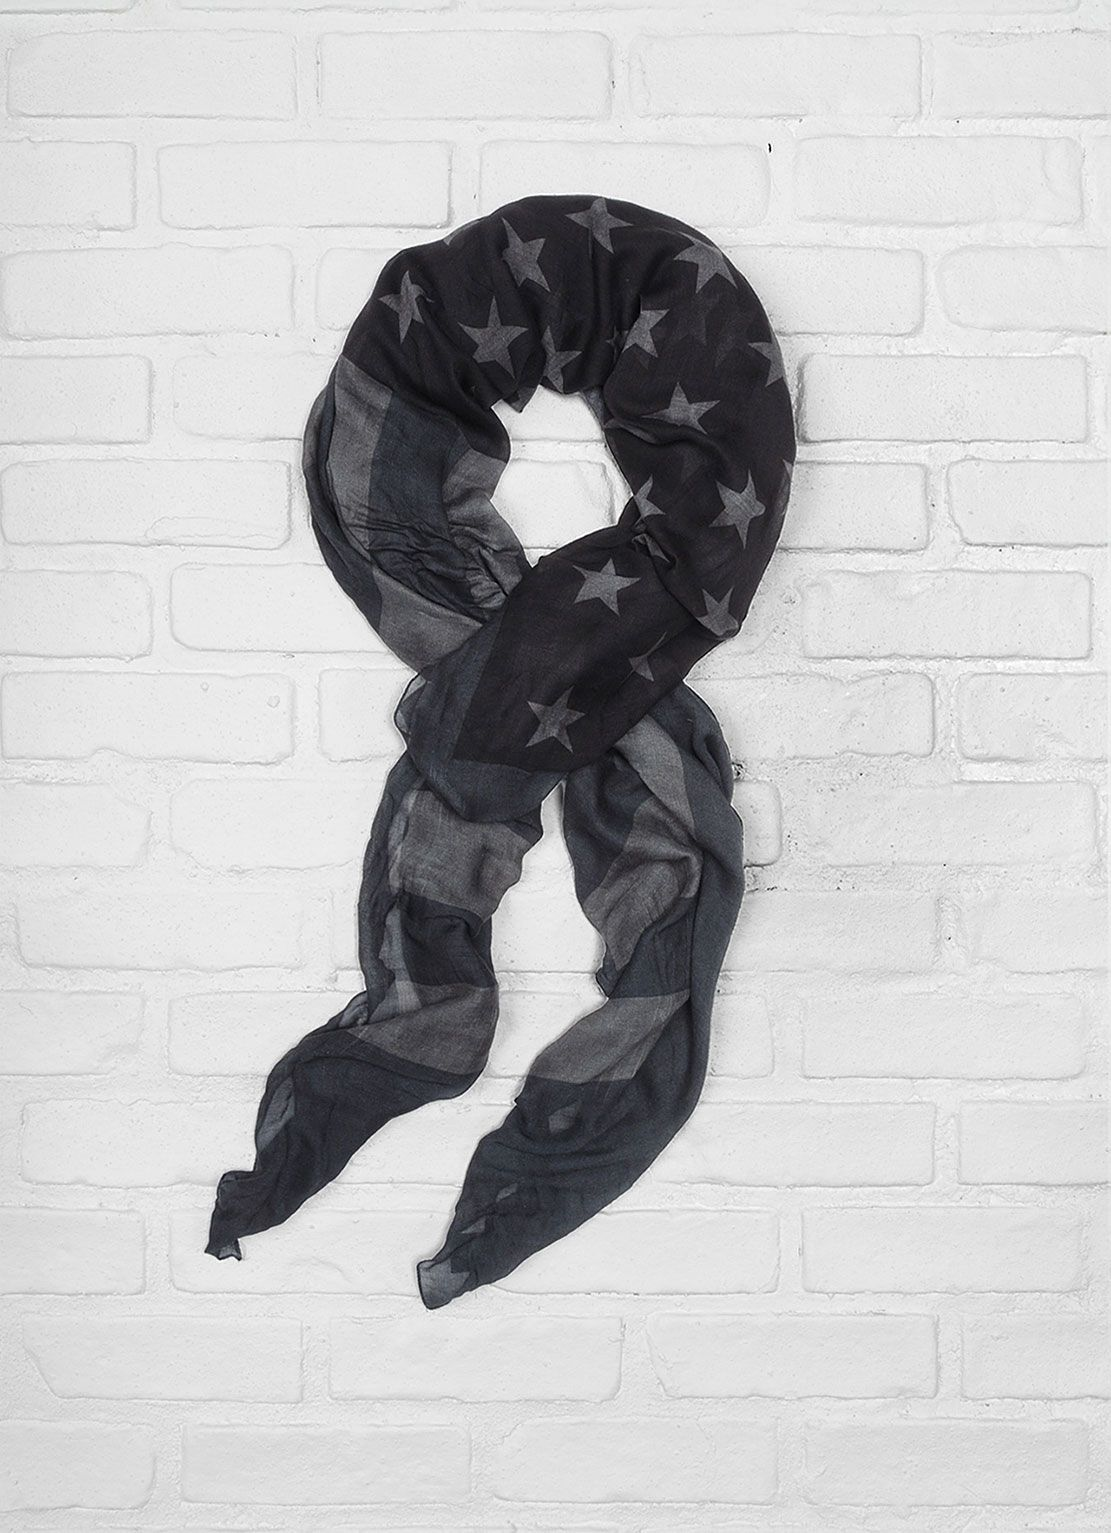 John Varvatos Antique Printed Flag scarf  http://www.johnvarvatos.com/antique-printed-flag-scarf/d/4414C4645#